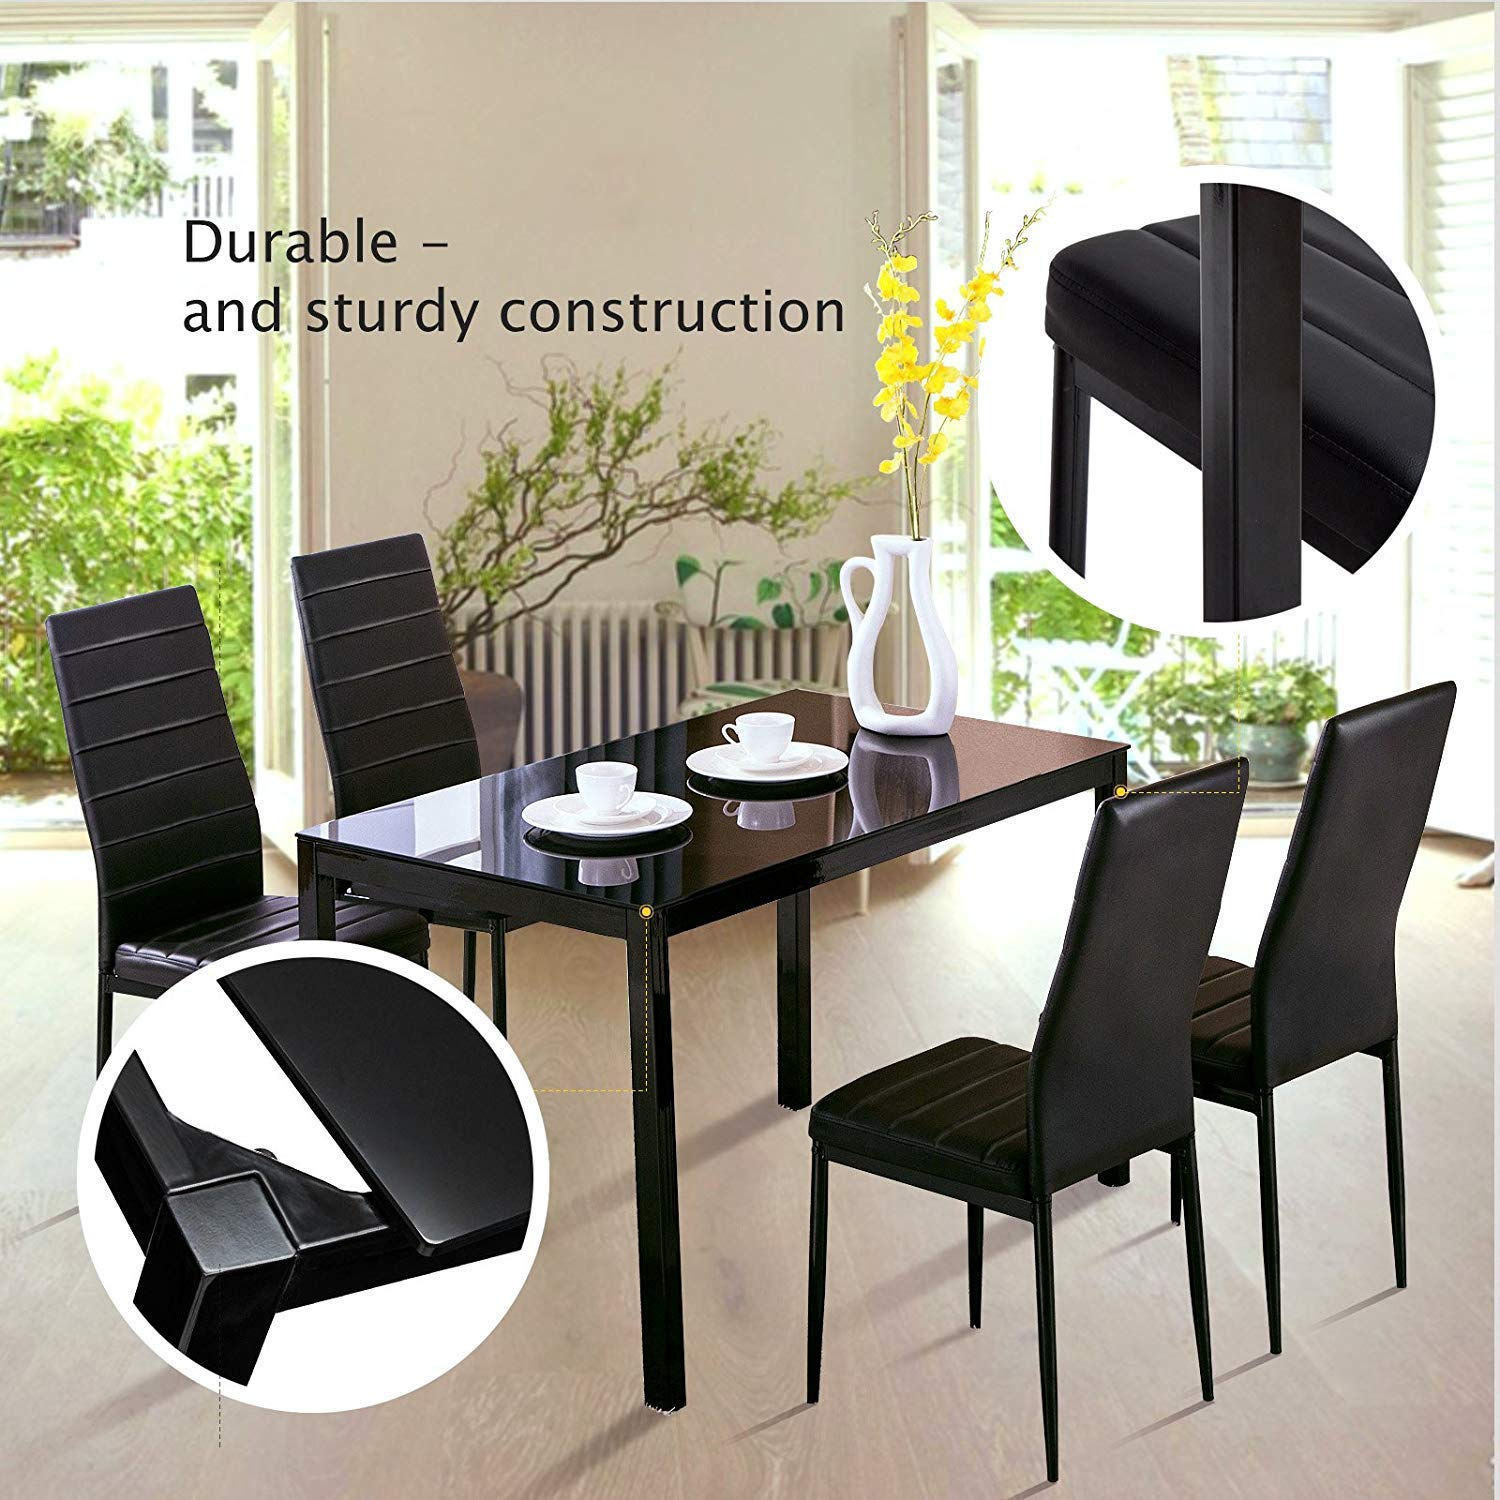 5 Pieces 1 Table 4 Chairs Huisen Furniture Modern Black Glass Dining Table And Chairs Set